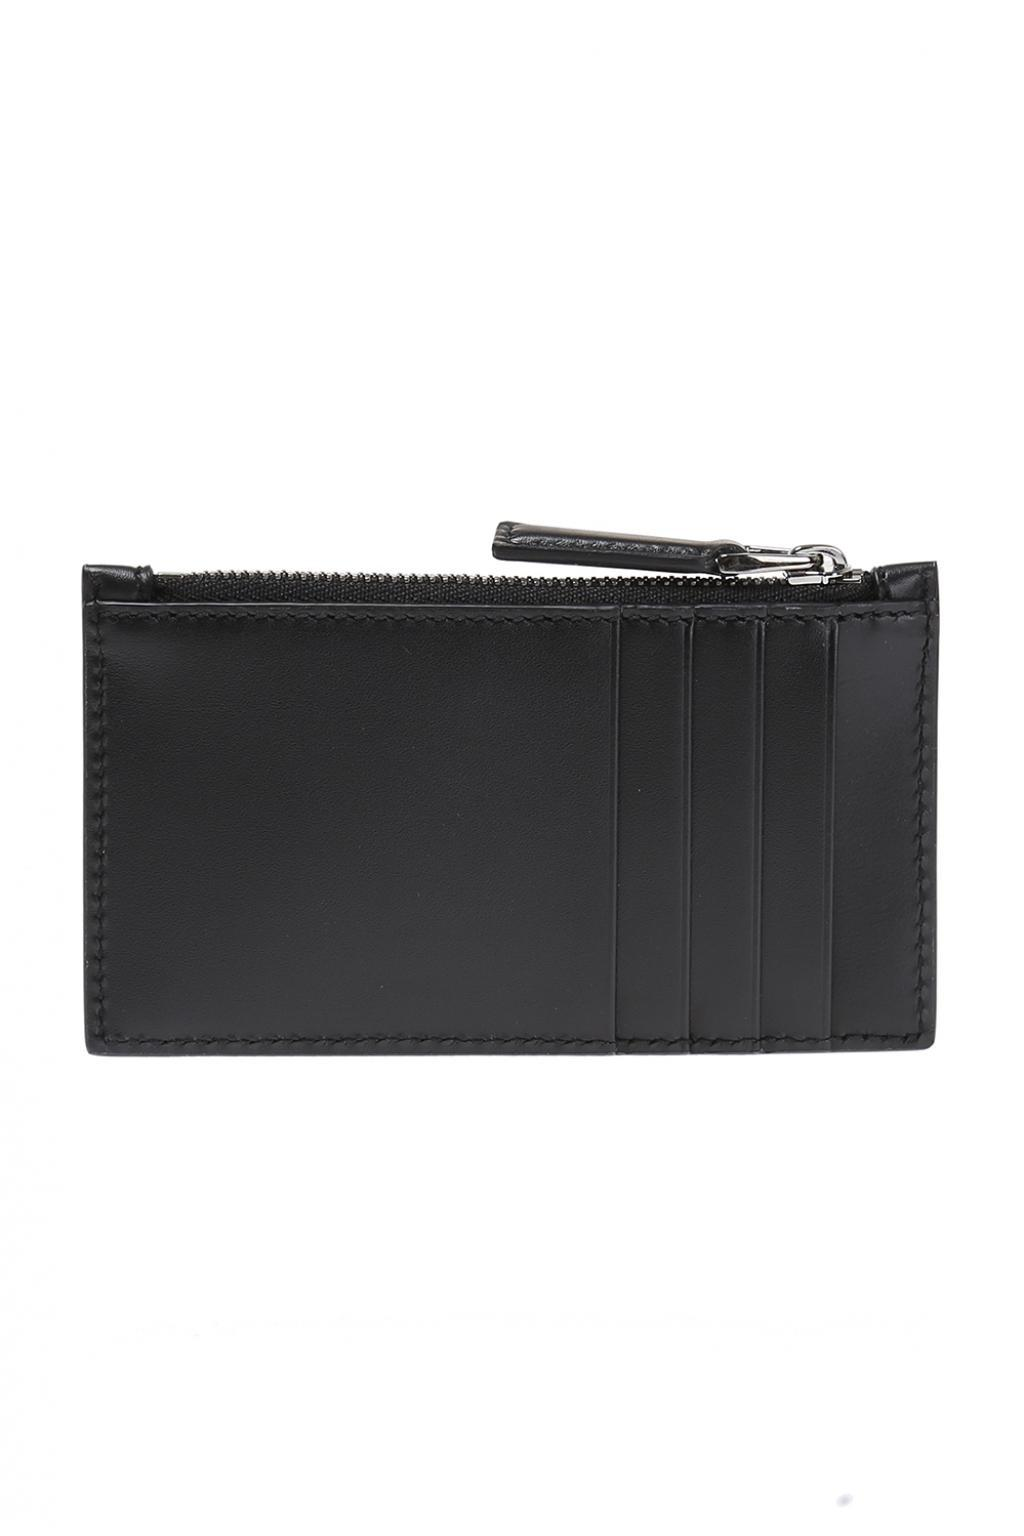 47793acfc20b58 Gucci Leather Card Case in Black for Men - Lyst